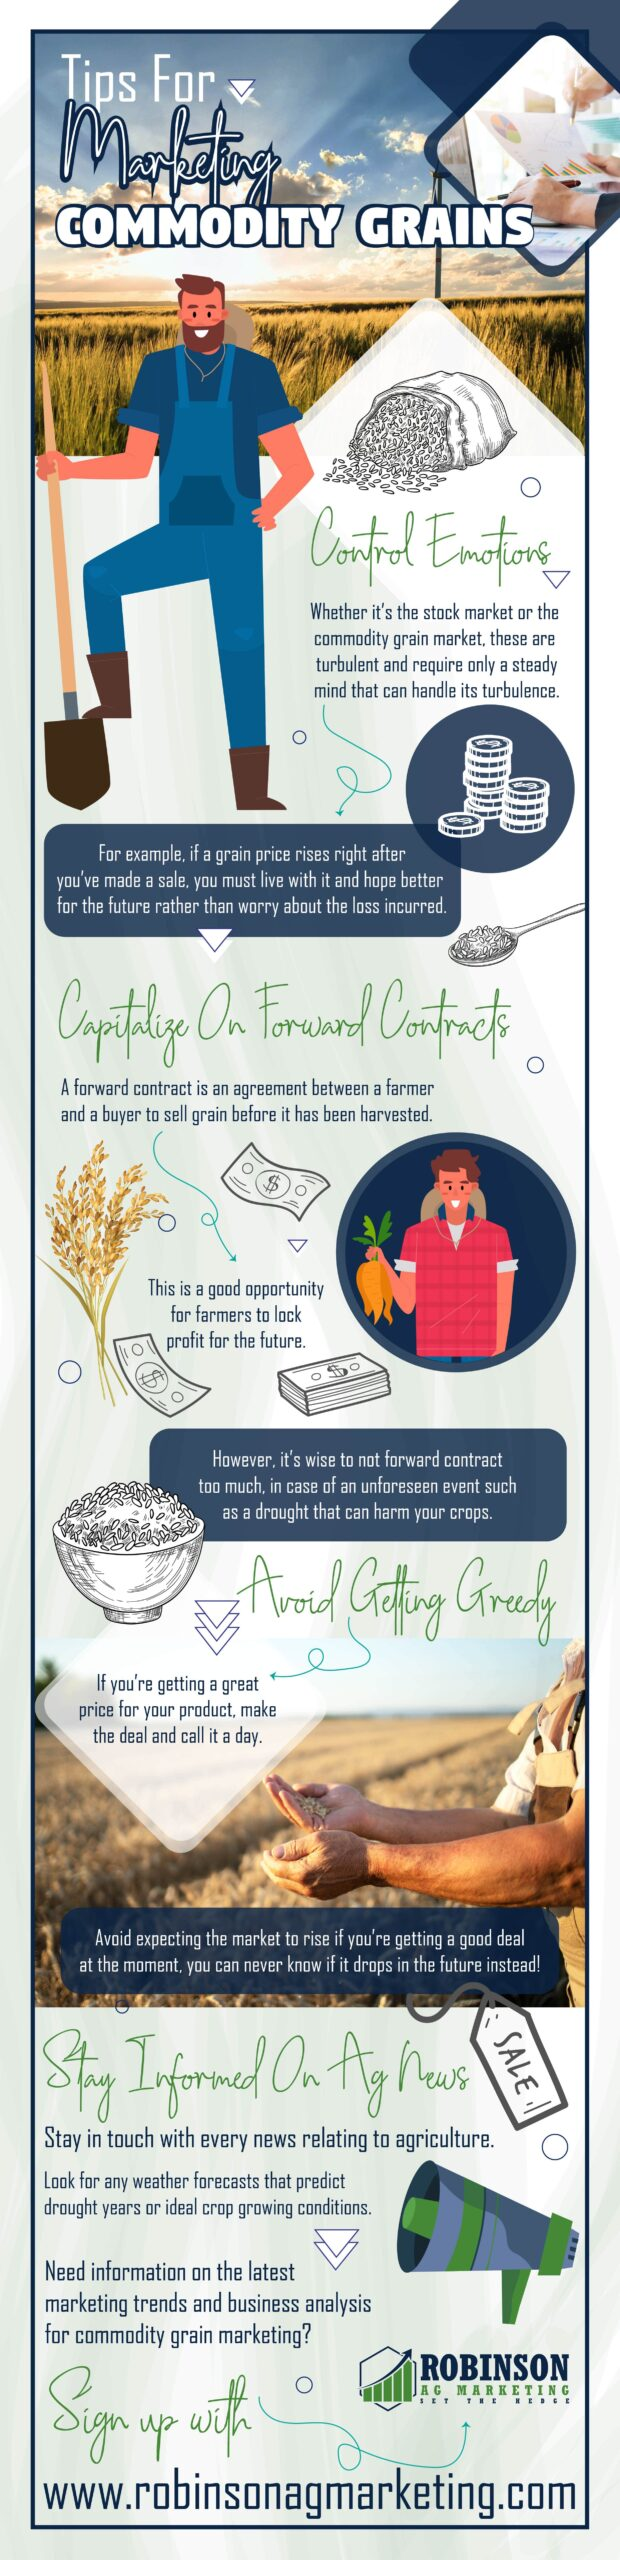 Tips For Marketing Commodity Grains